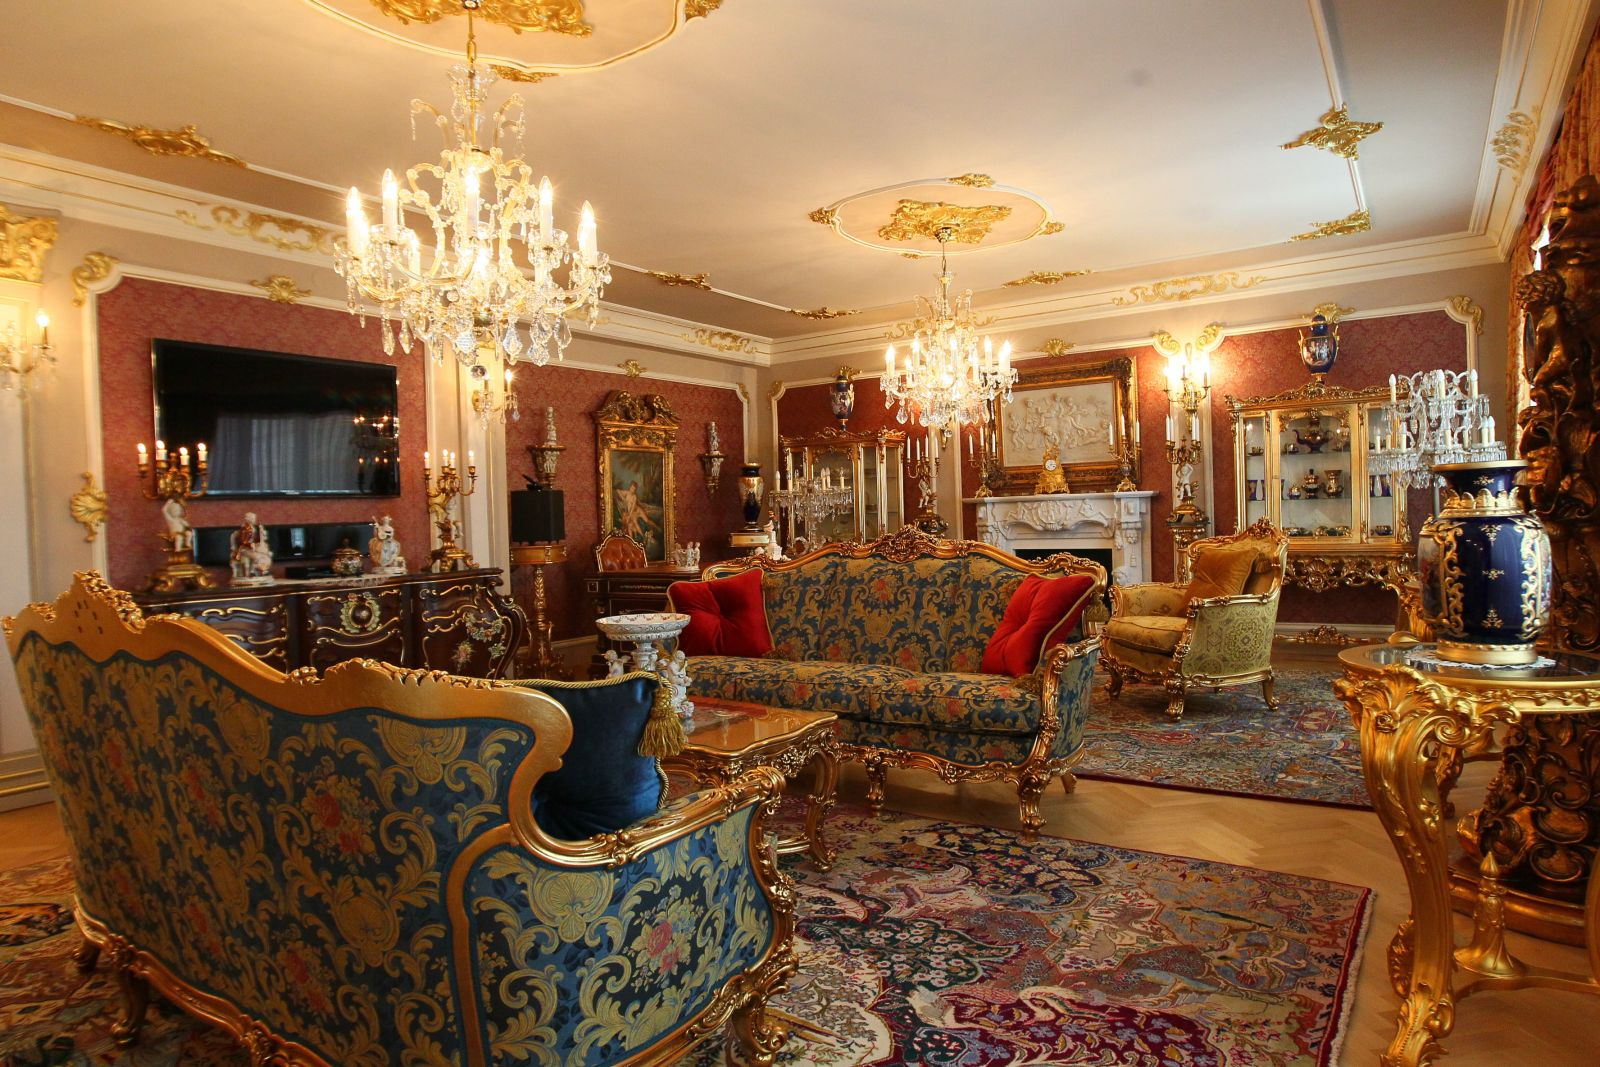 Grandeur atmosphere of the living room with richly recorated carpet, crystal chandelier and carved upholstered furniture